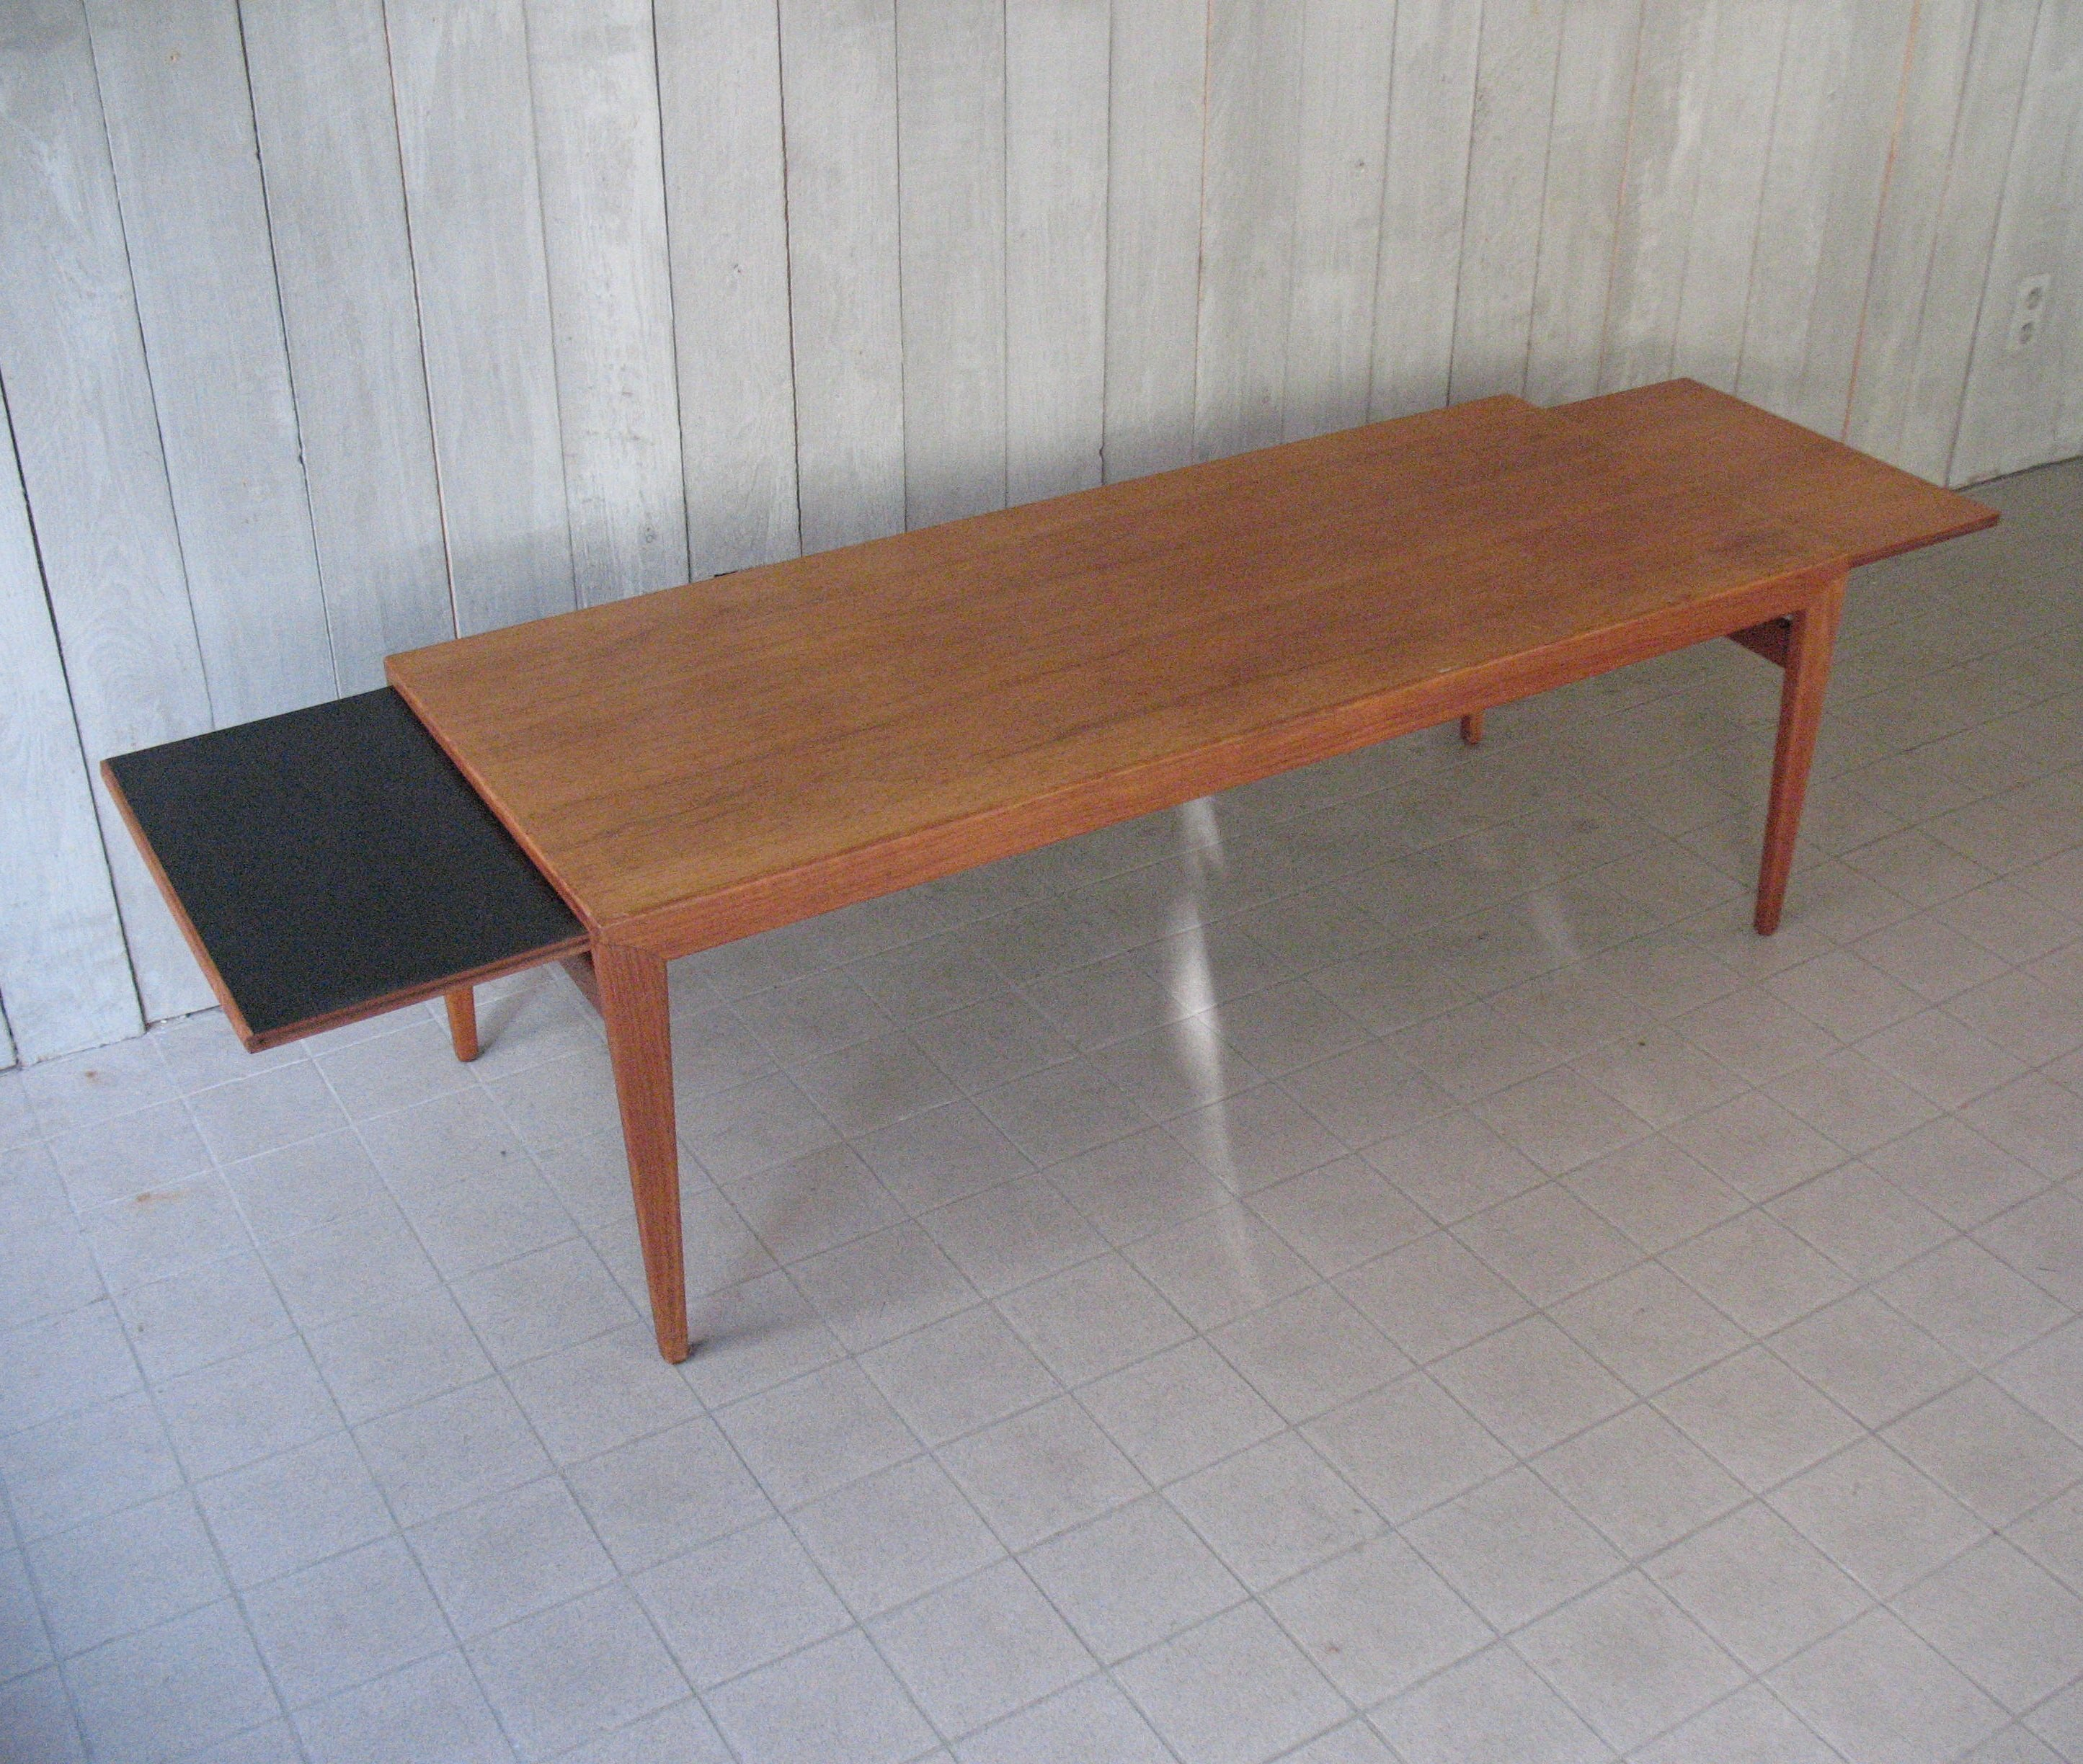 Ringgold Extendable Coffee Table With Storage: Johannes Andersen Extendable Coffee Table For Uldum